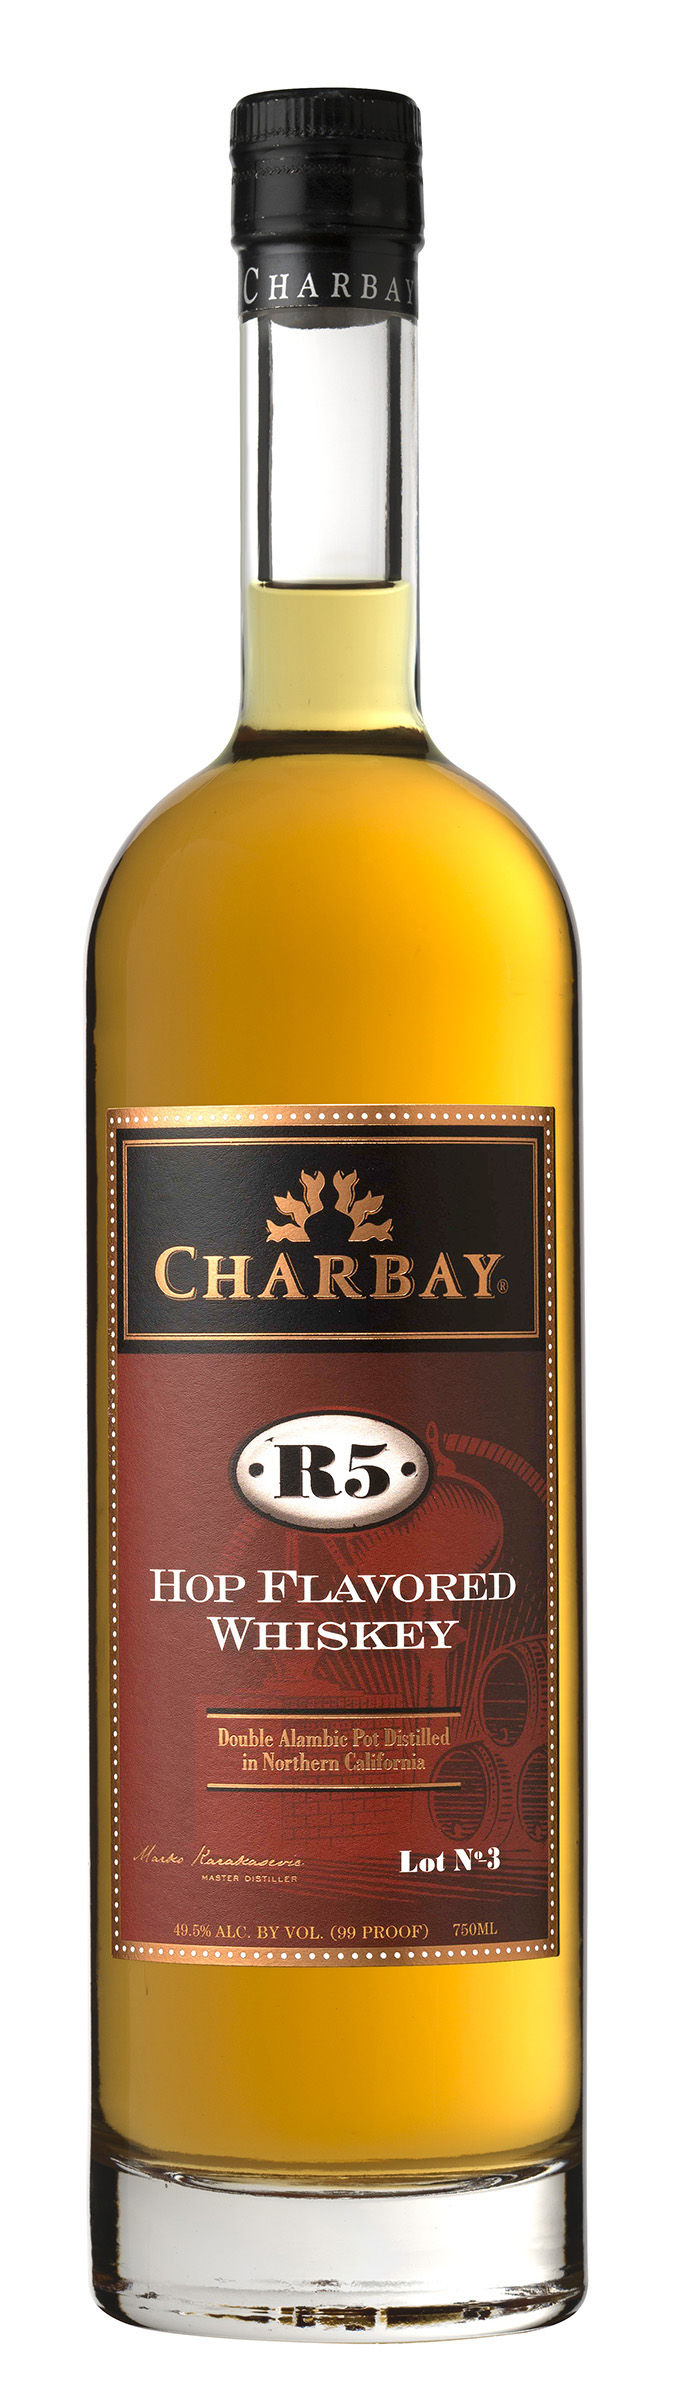 Charbay R5 Hop-Flavored Whiskey Lot 3 (2015)